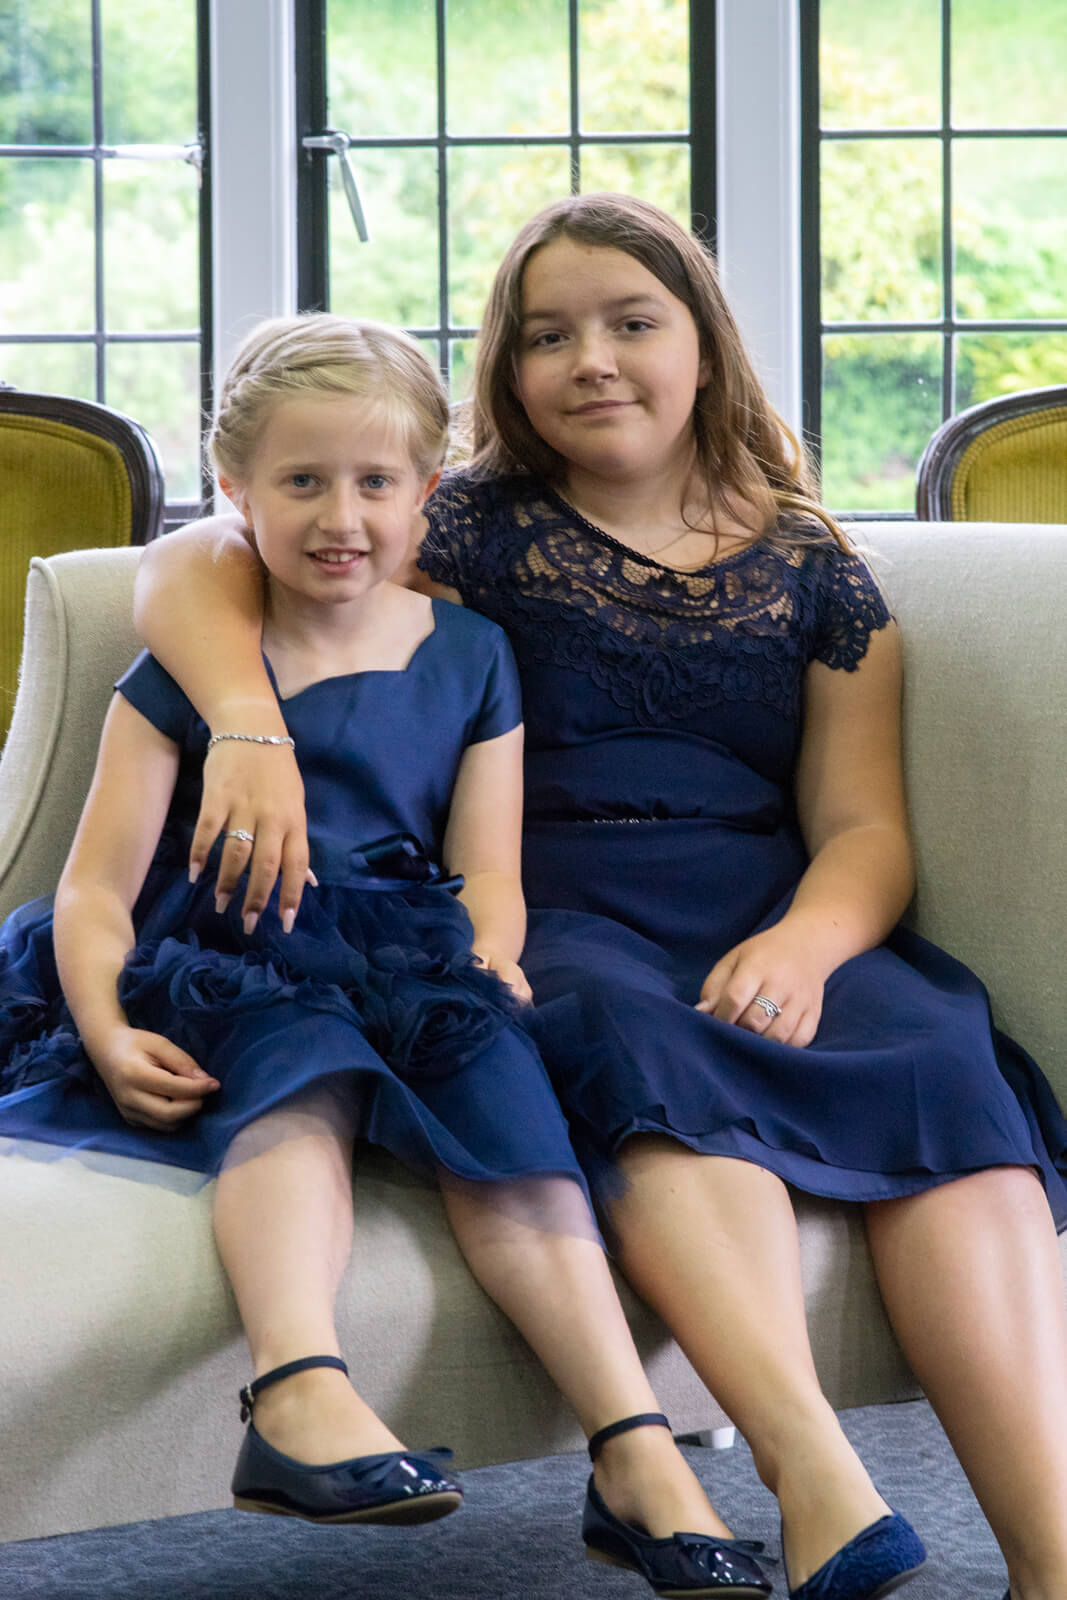 Young bridesmaids in blue with their arms around each other